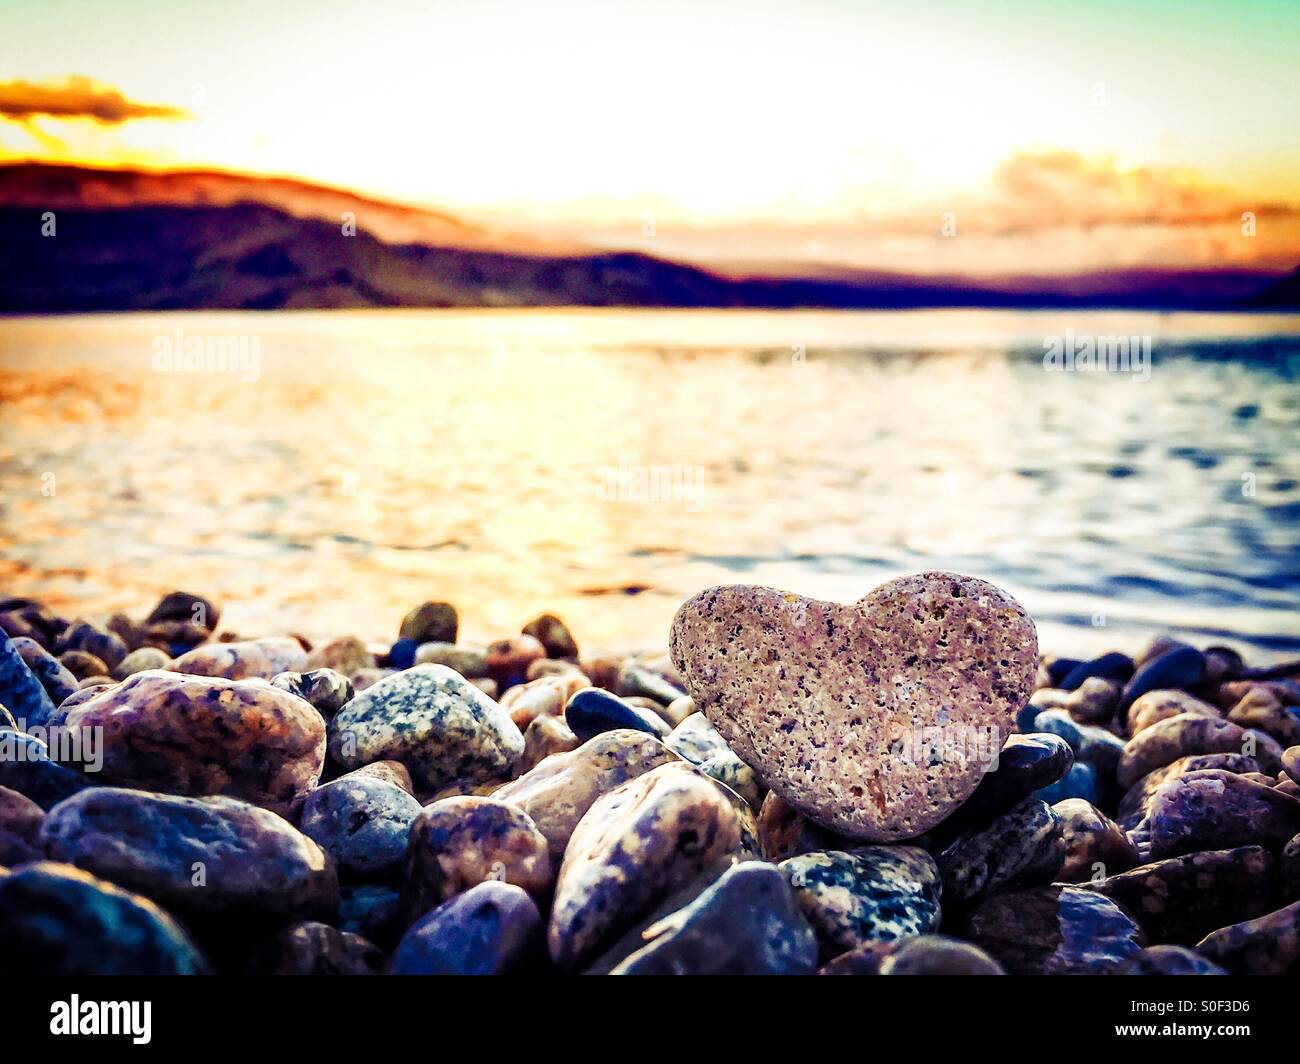 Summer Love. The highlight is on the heart shaped rock sitting on the beach in the foreground. Sunset over lake - Stock Image